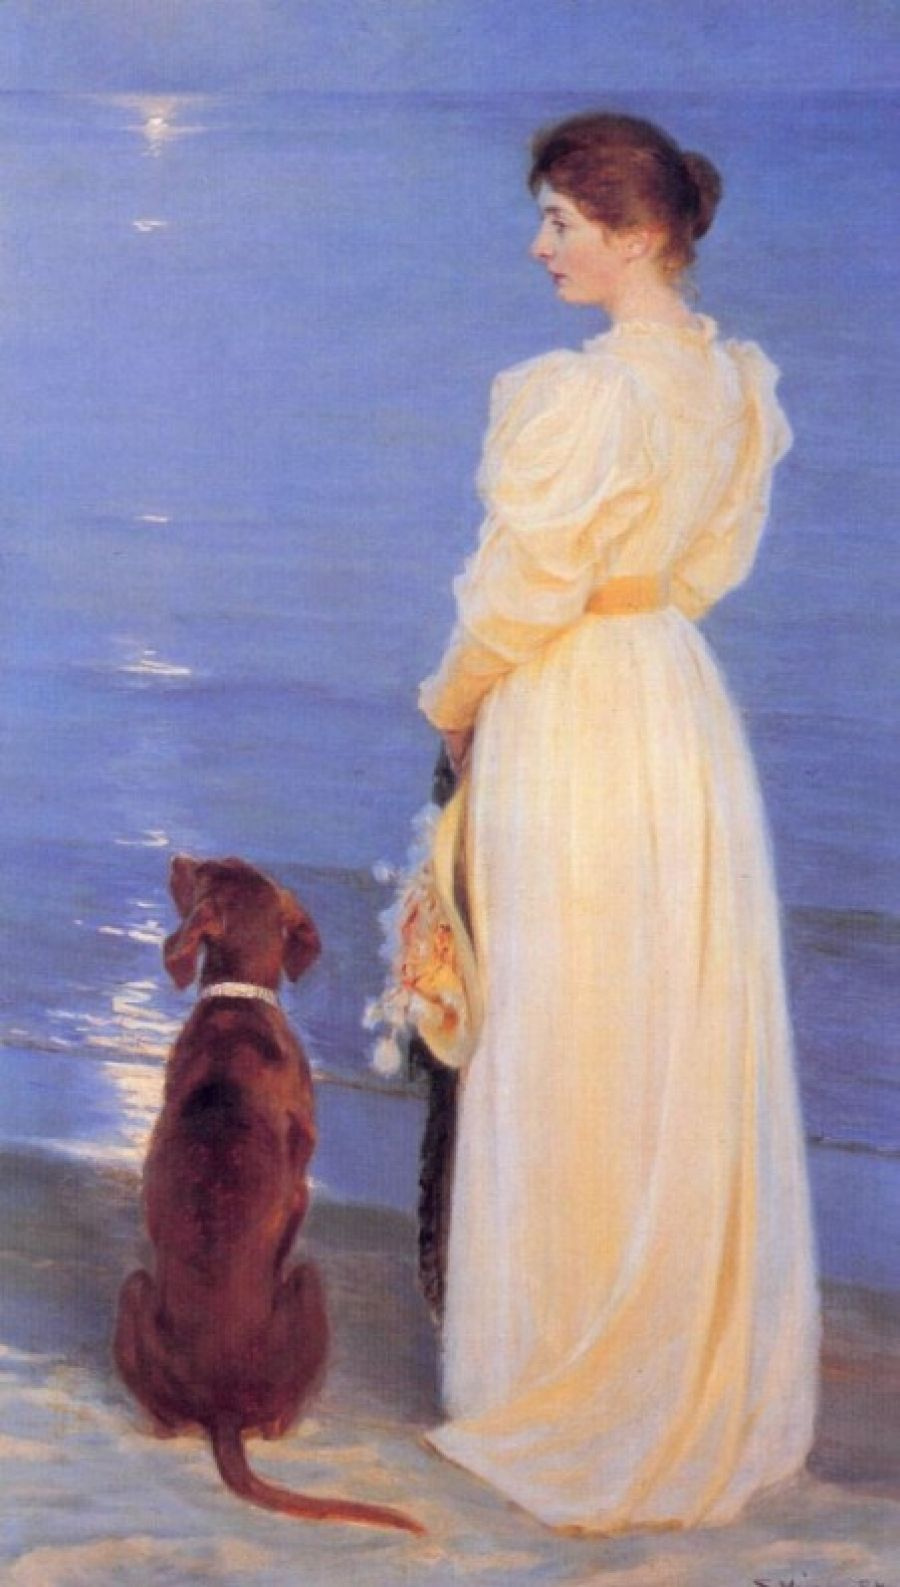 Summer evening at Skagen  The artist's wife and dog on the